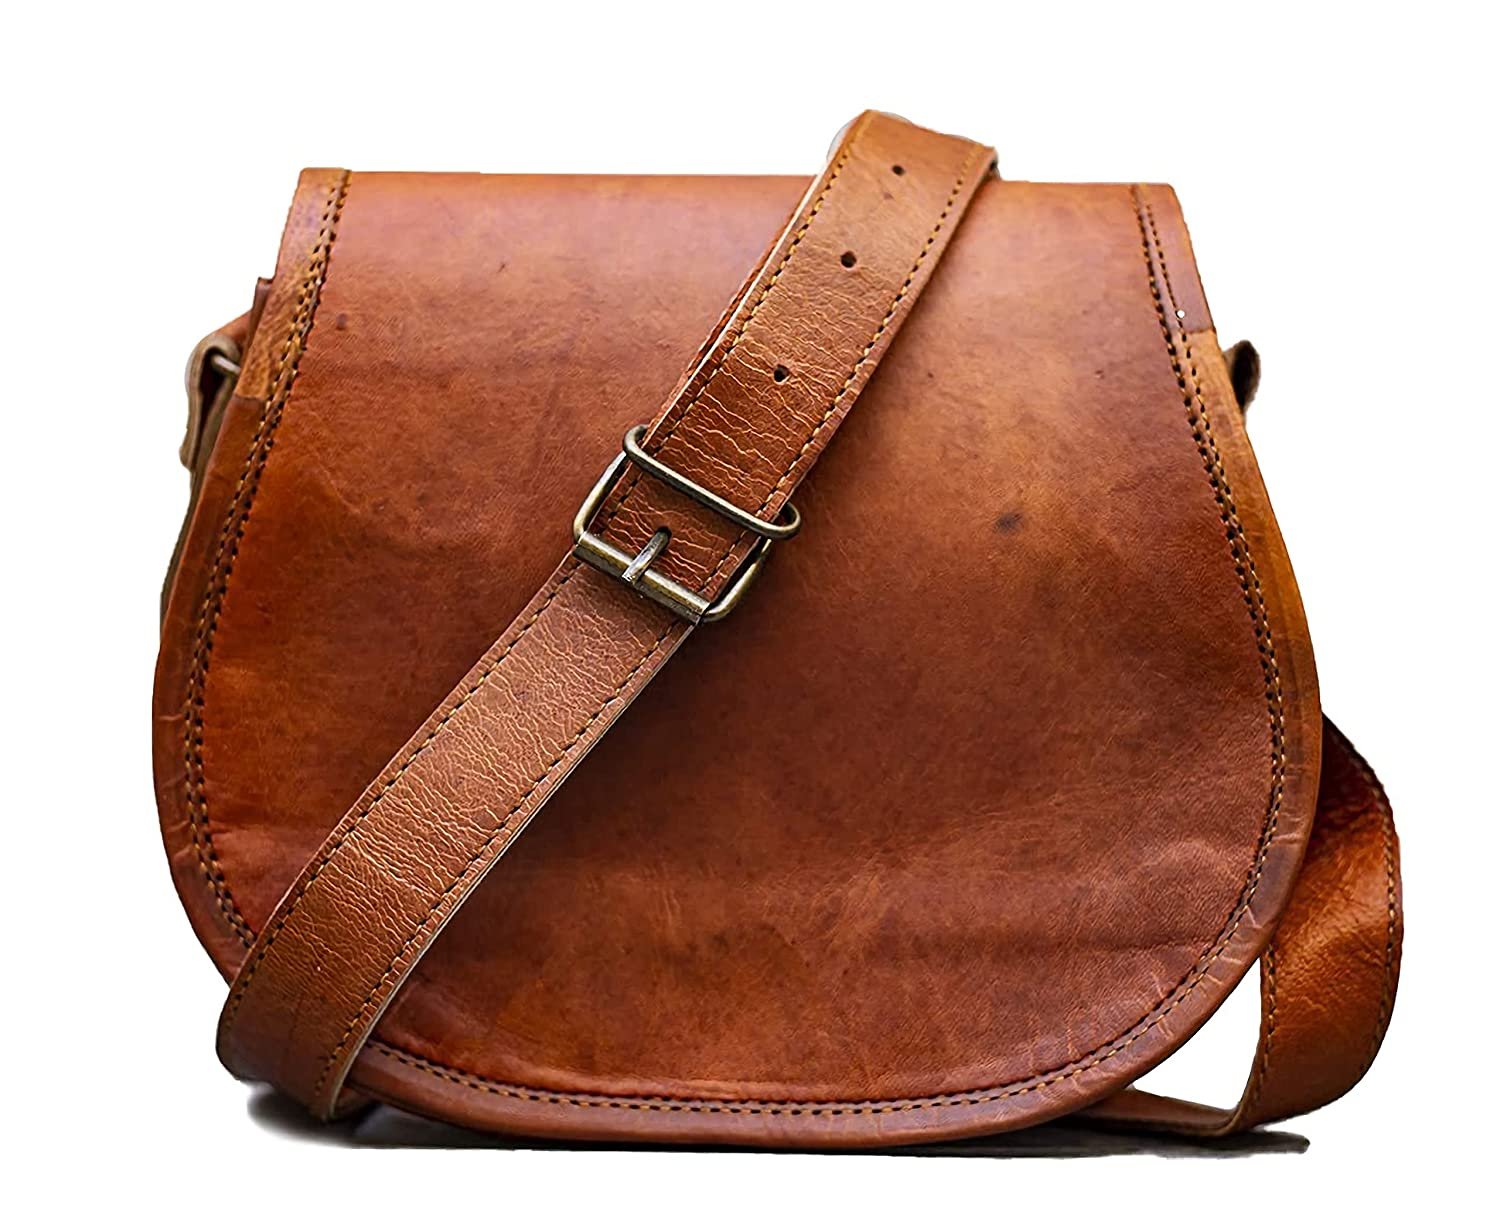 PASCADO Brown Vintage leather crossbody Purse satchel small cute crossover round bags for women sling shoulder bag clearance